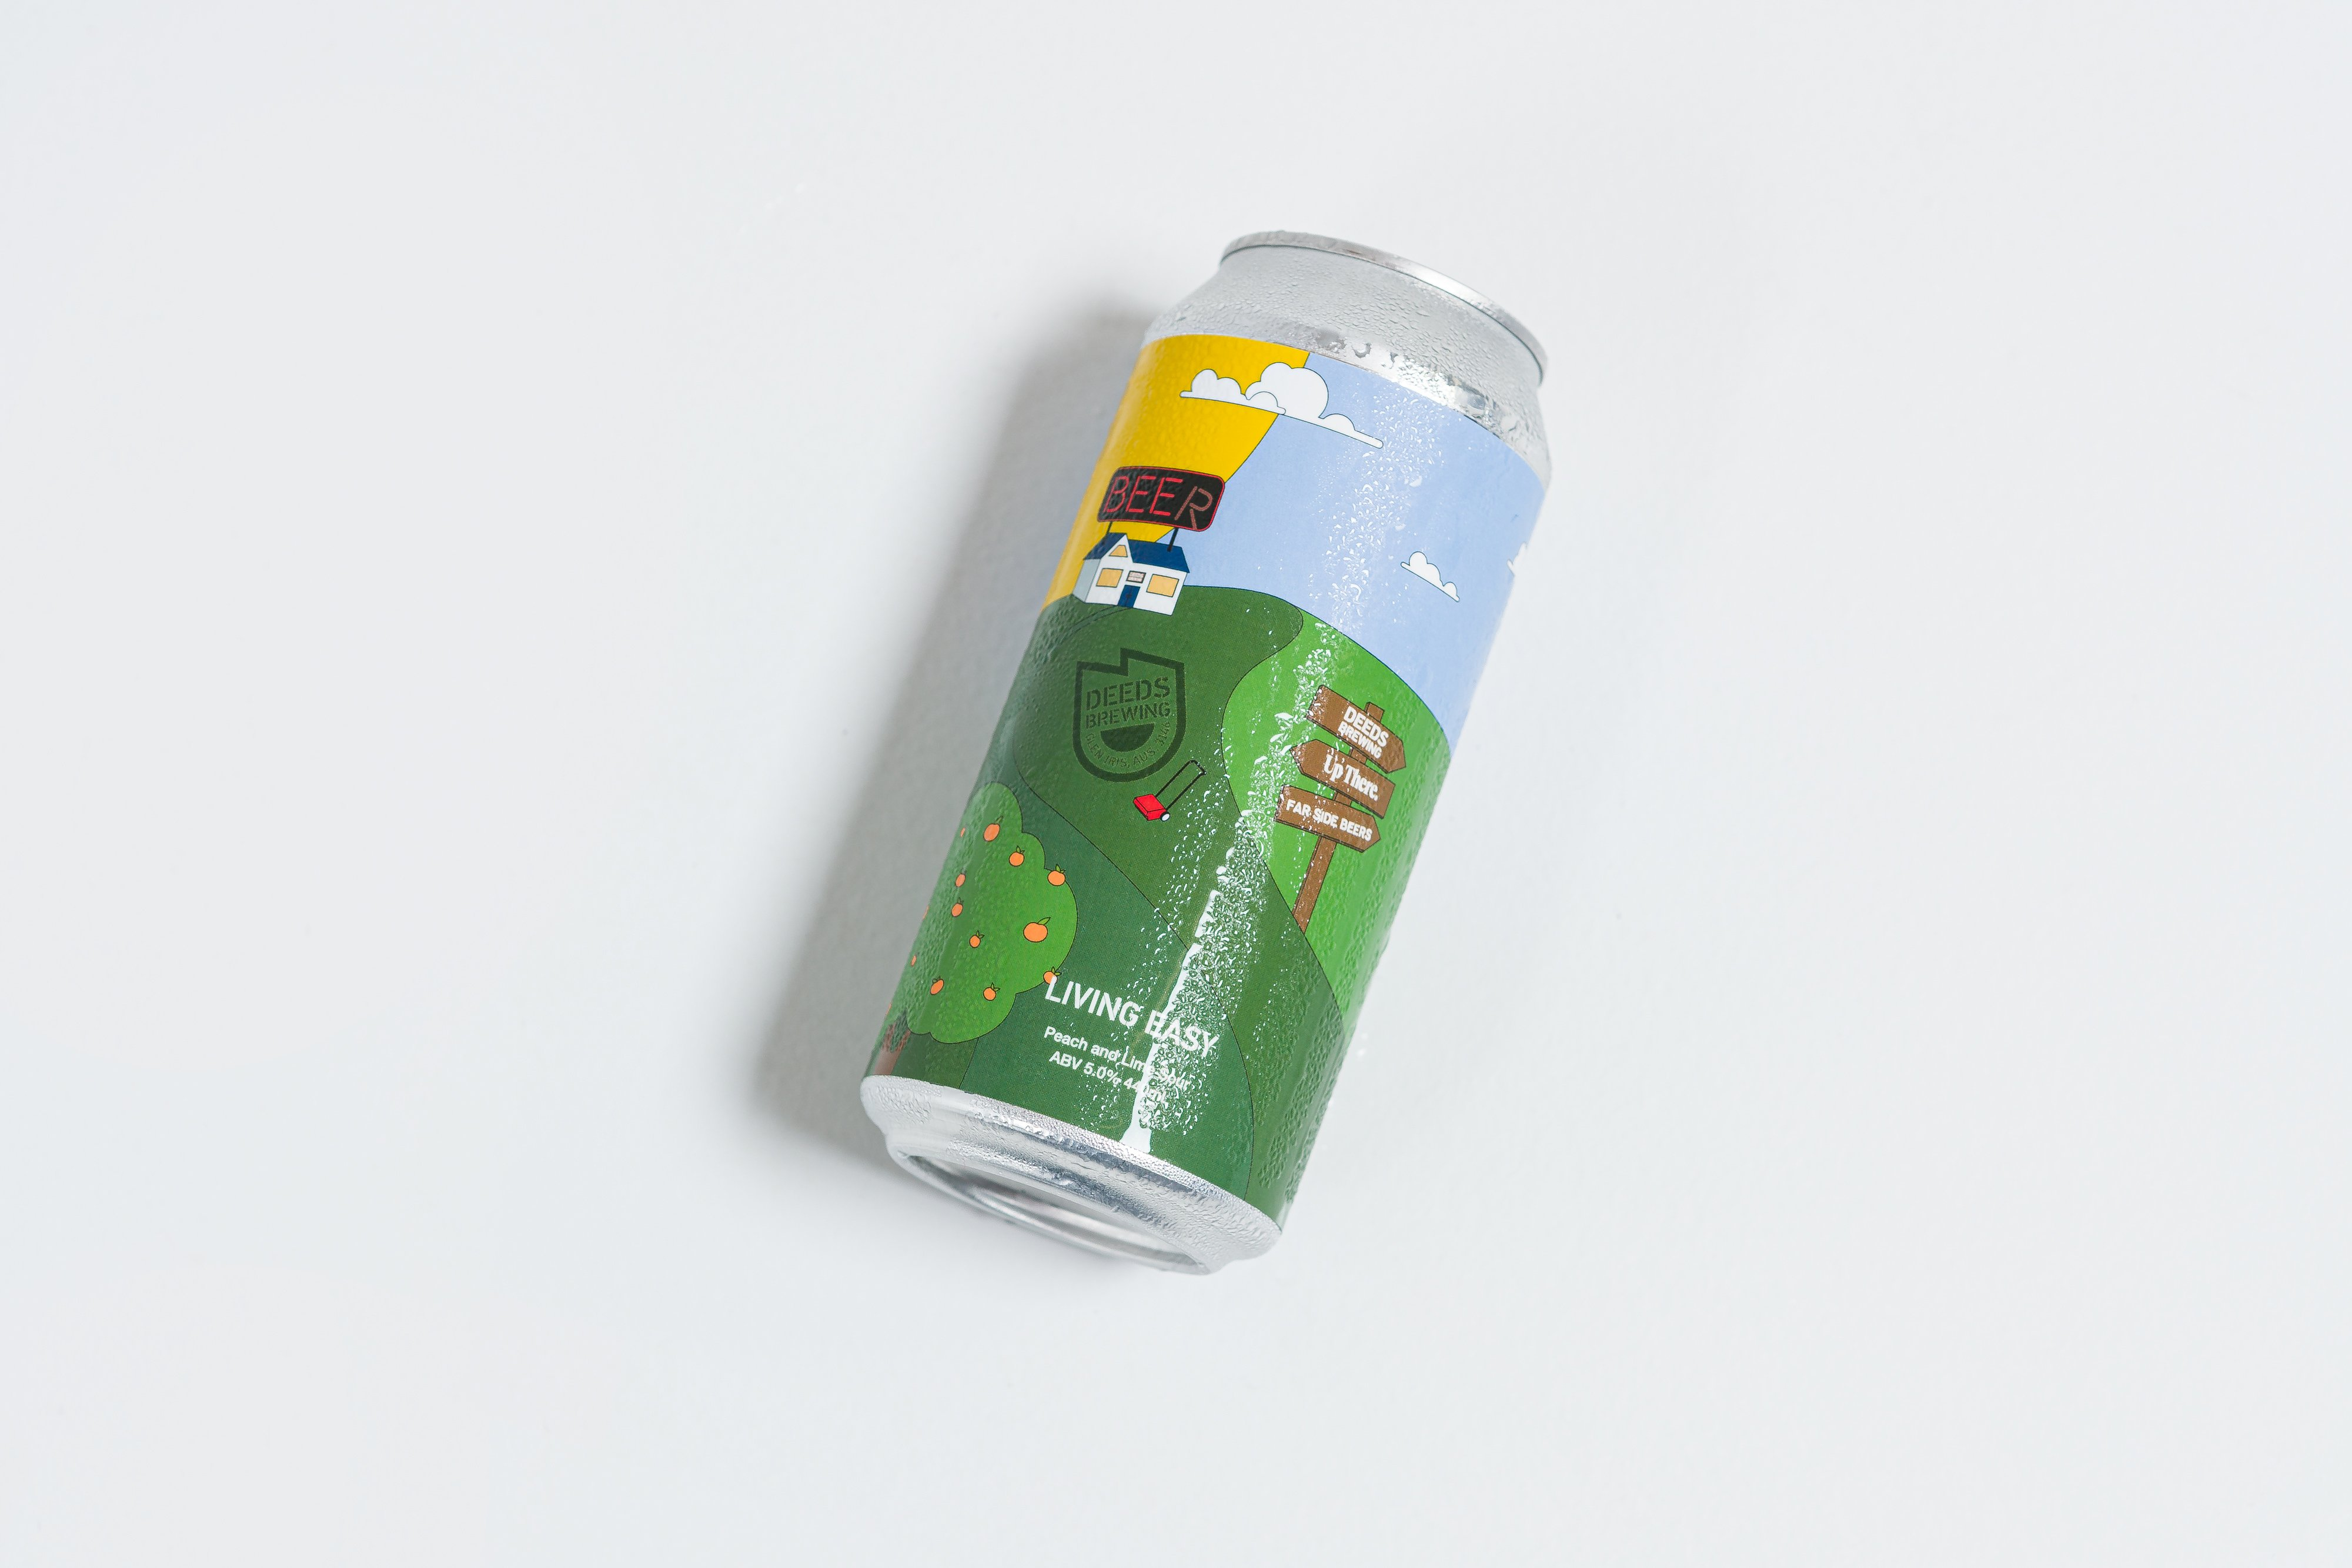 Up There X Far Side Beers X Deeds Brewing - Living Easy Peach & Lime Sour Beer Limited Edition Merch